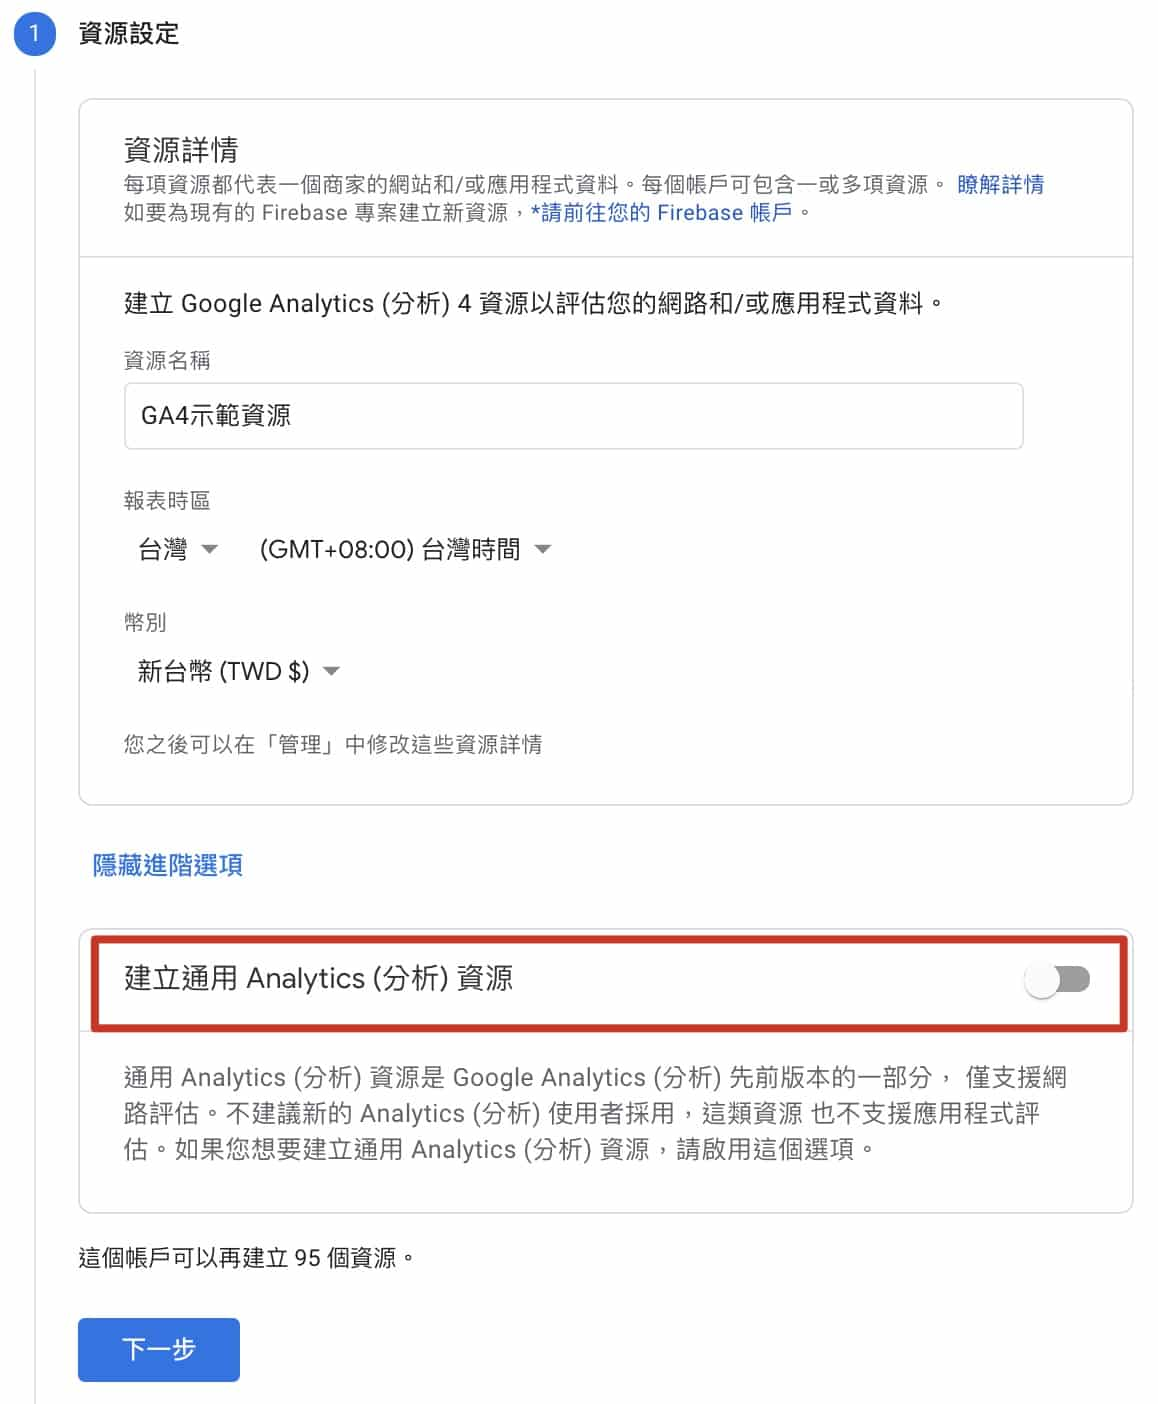 資源設定 Google Analytics 4 資源